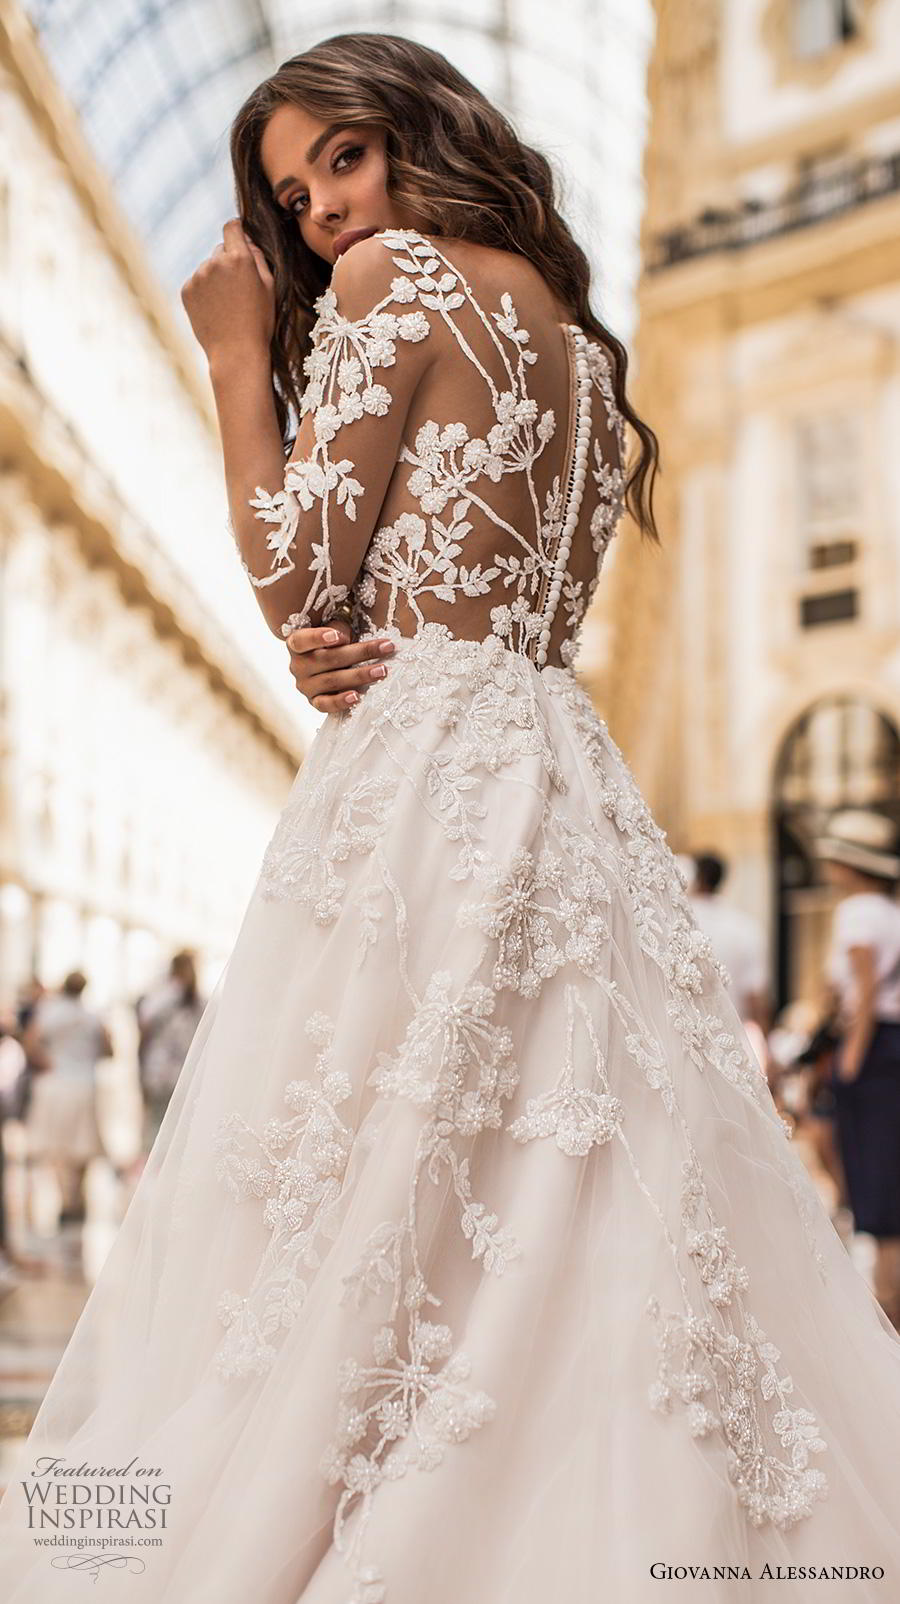 giovanna alessandro 2019 bridal three quarter sleeves sweetheart neckline heavily embellished bodice romantic a  line wedding dress lace button back chapel train (7) zbv